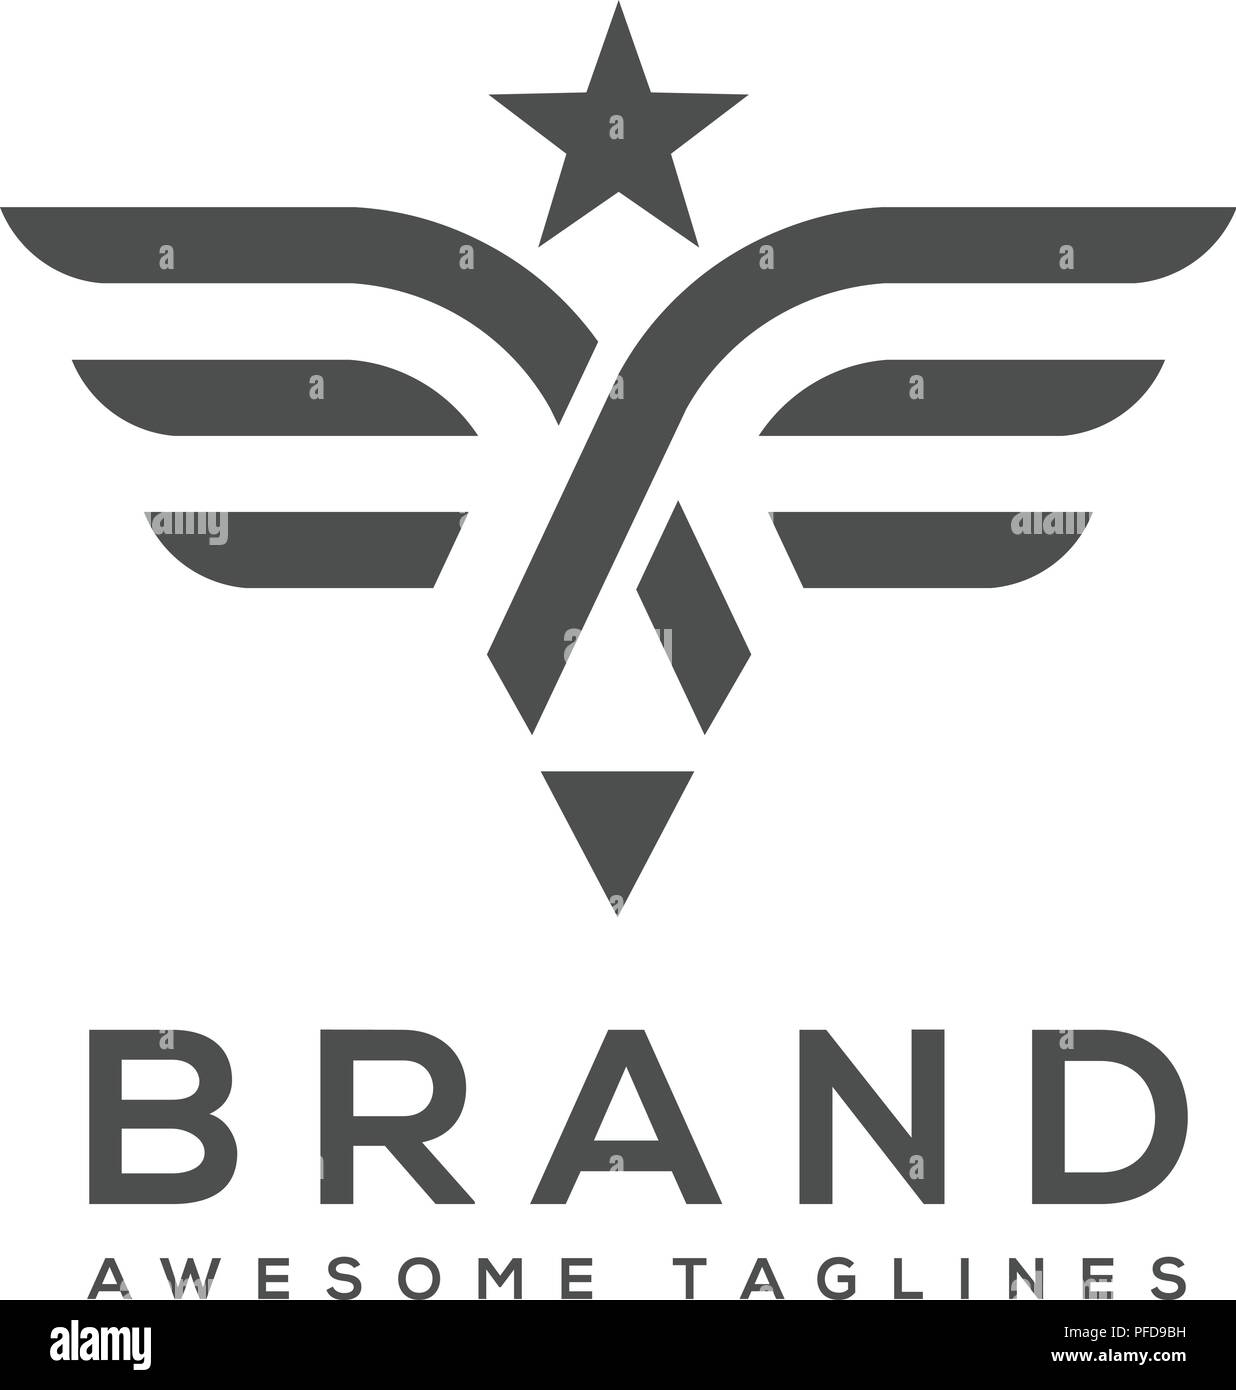 best simple vector wings logo winged logo company and icon wing flying eagle wing brand and logotype wing bird illustration stock vector image art alamy https www alamy com best simple vector wings logo winged logo company and icon wing flying eagle wing brand and logotype wing bird illustration image216037013 html